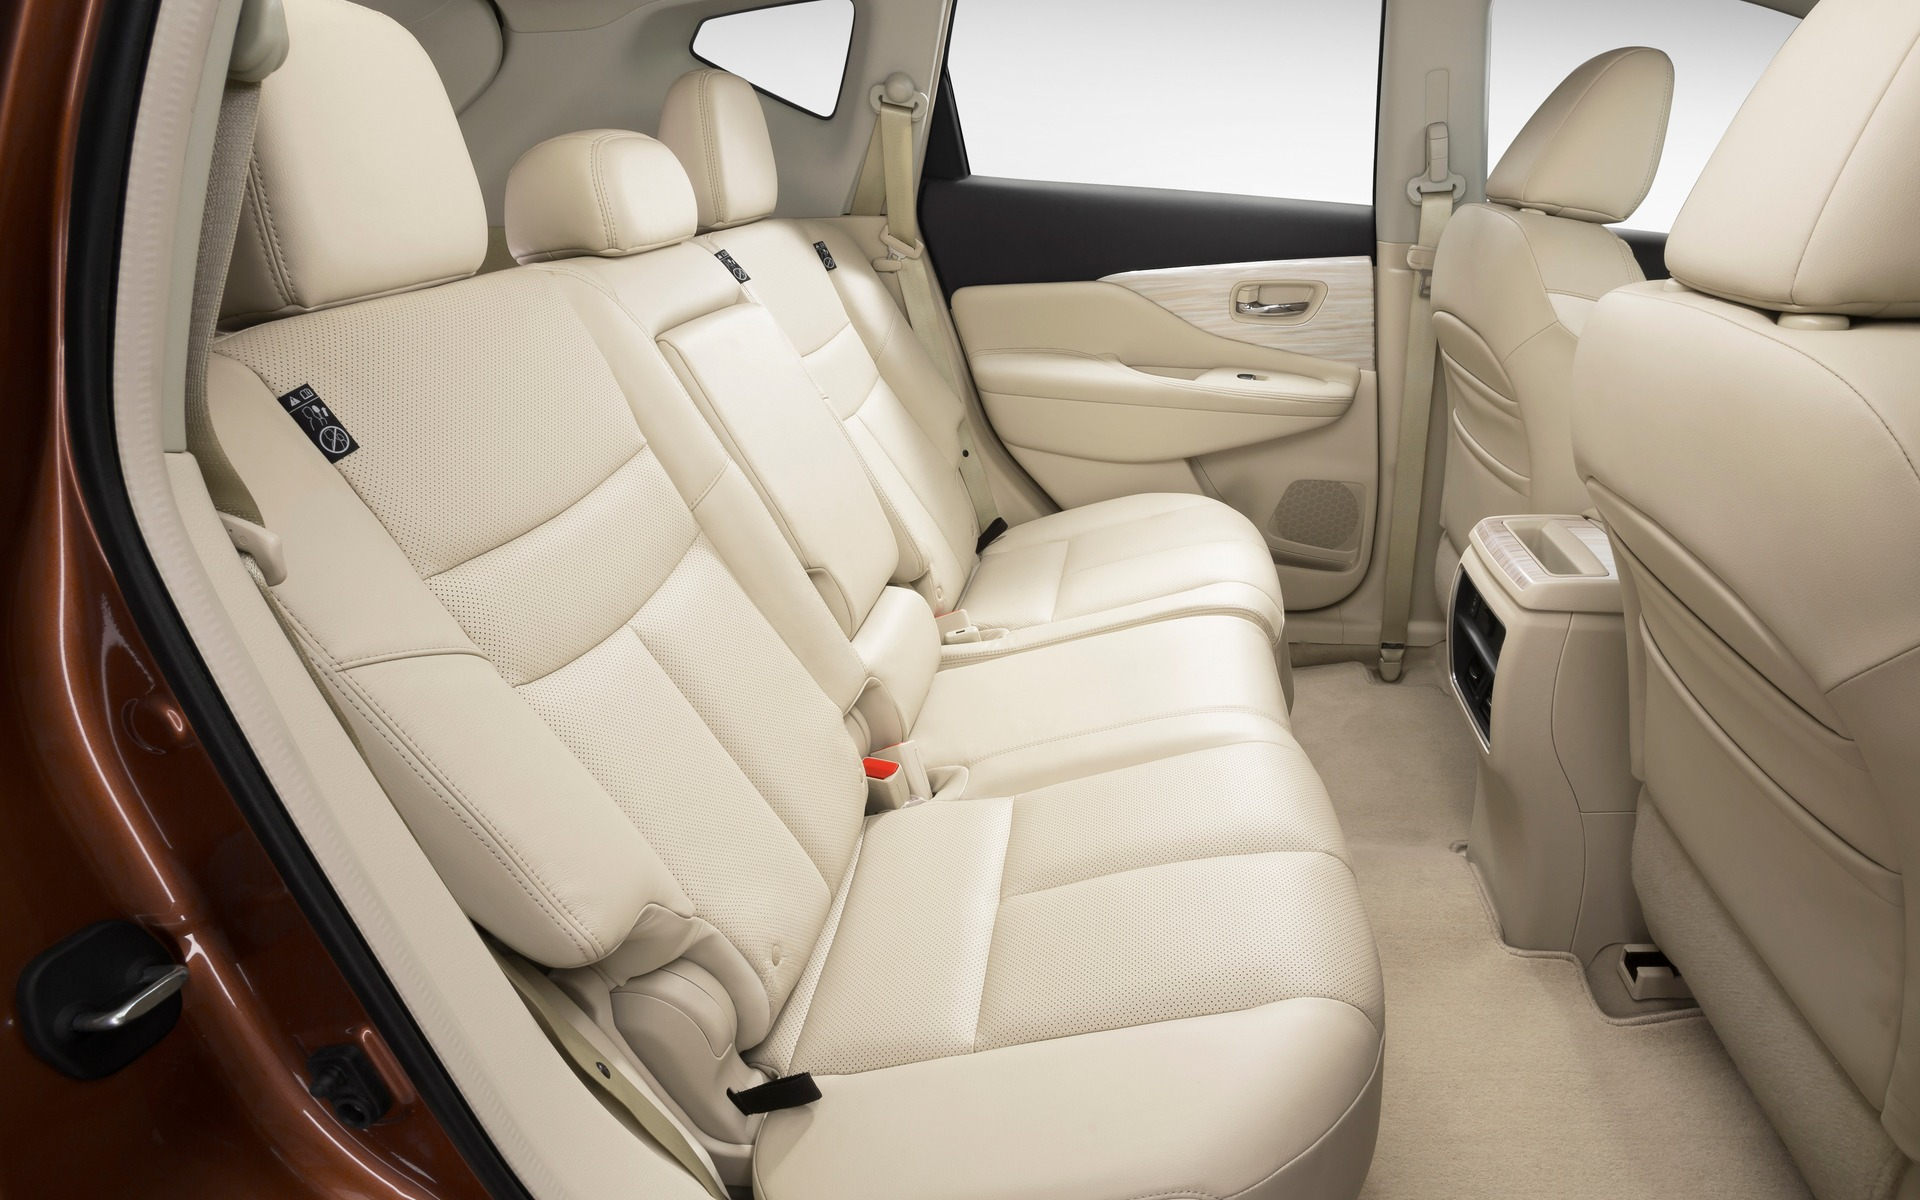 Passengers enjoy excellent room even in the second row of the SUV.